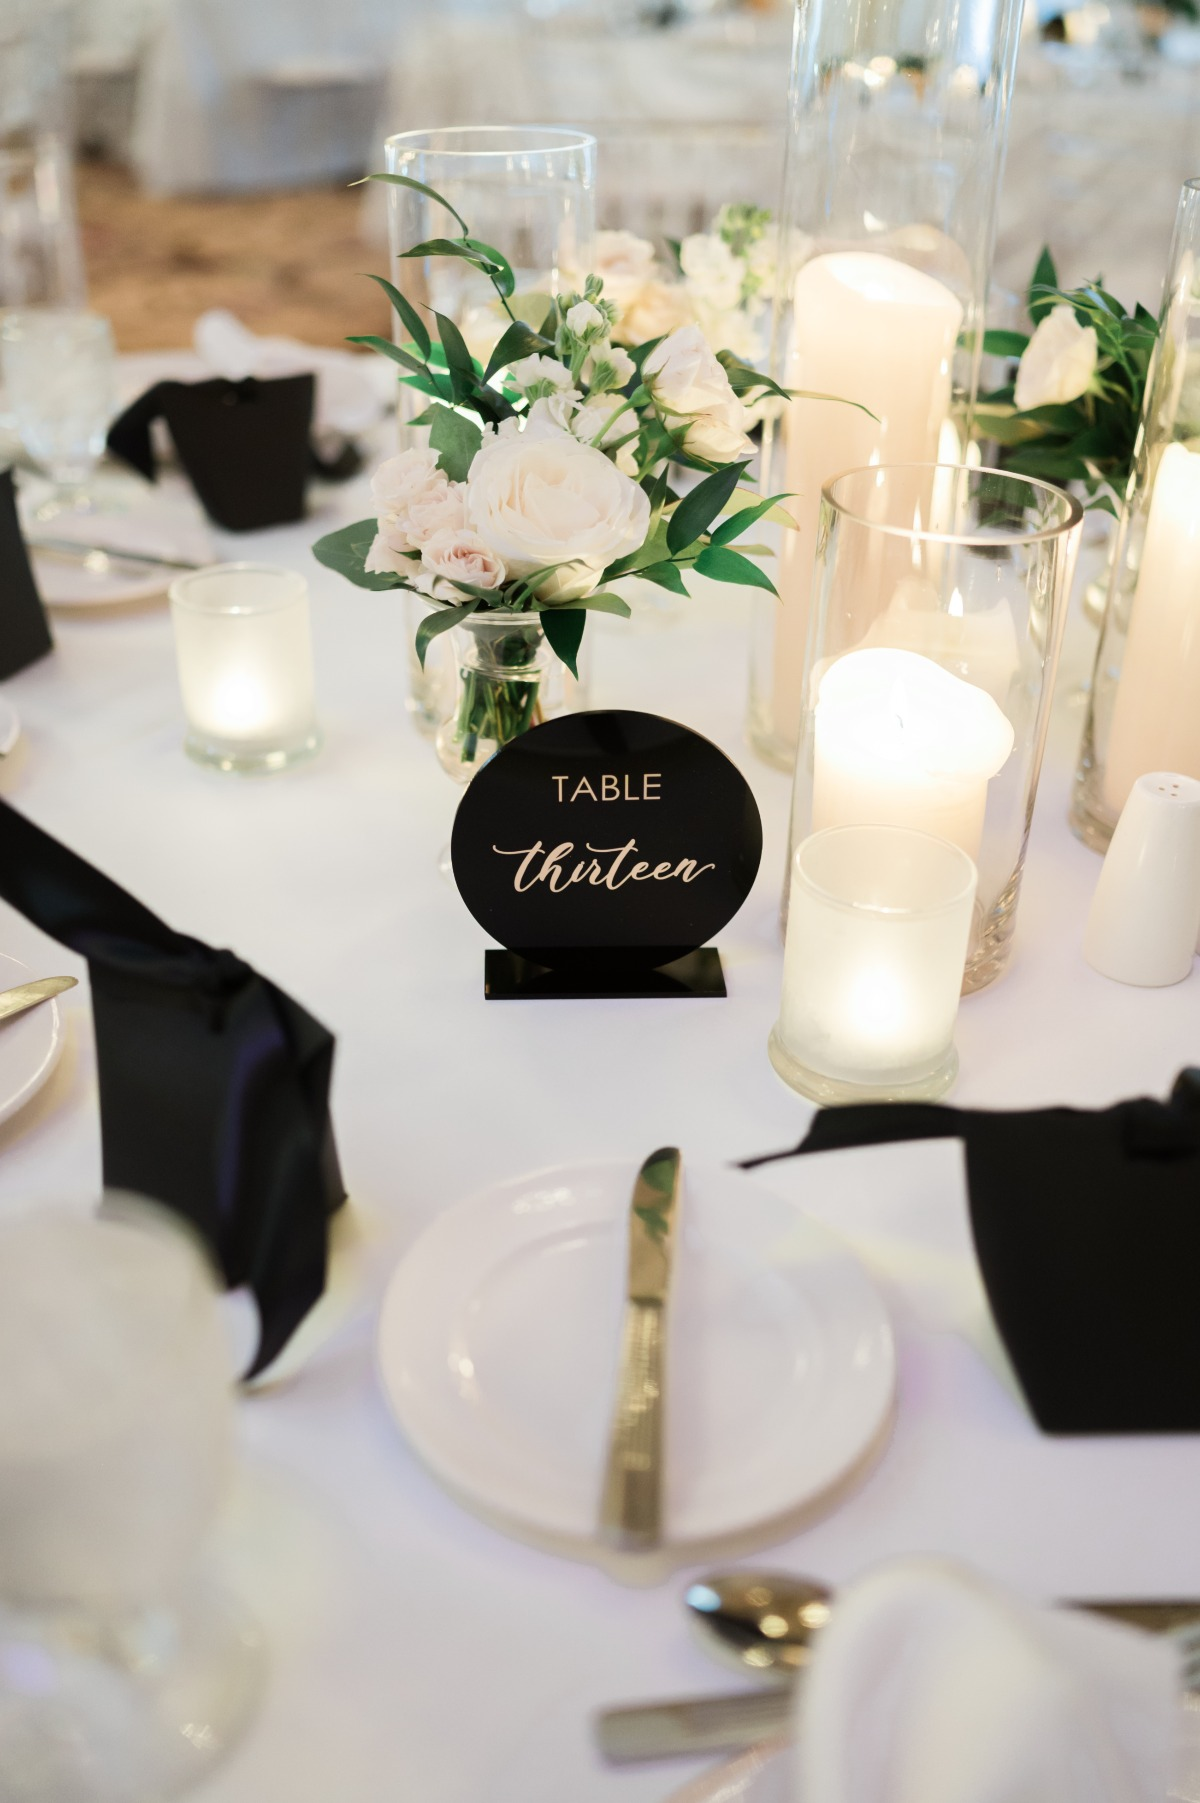 acrylic table numbers with gold calligraphy